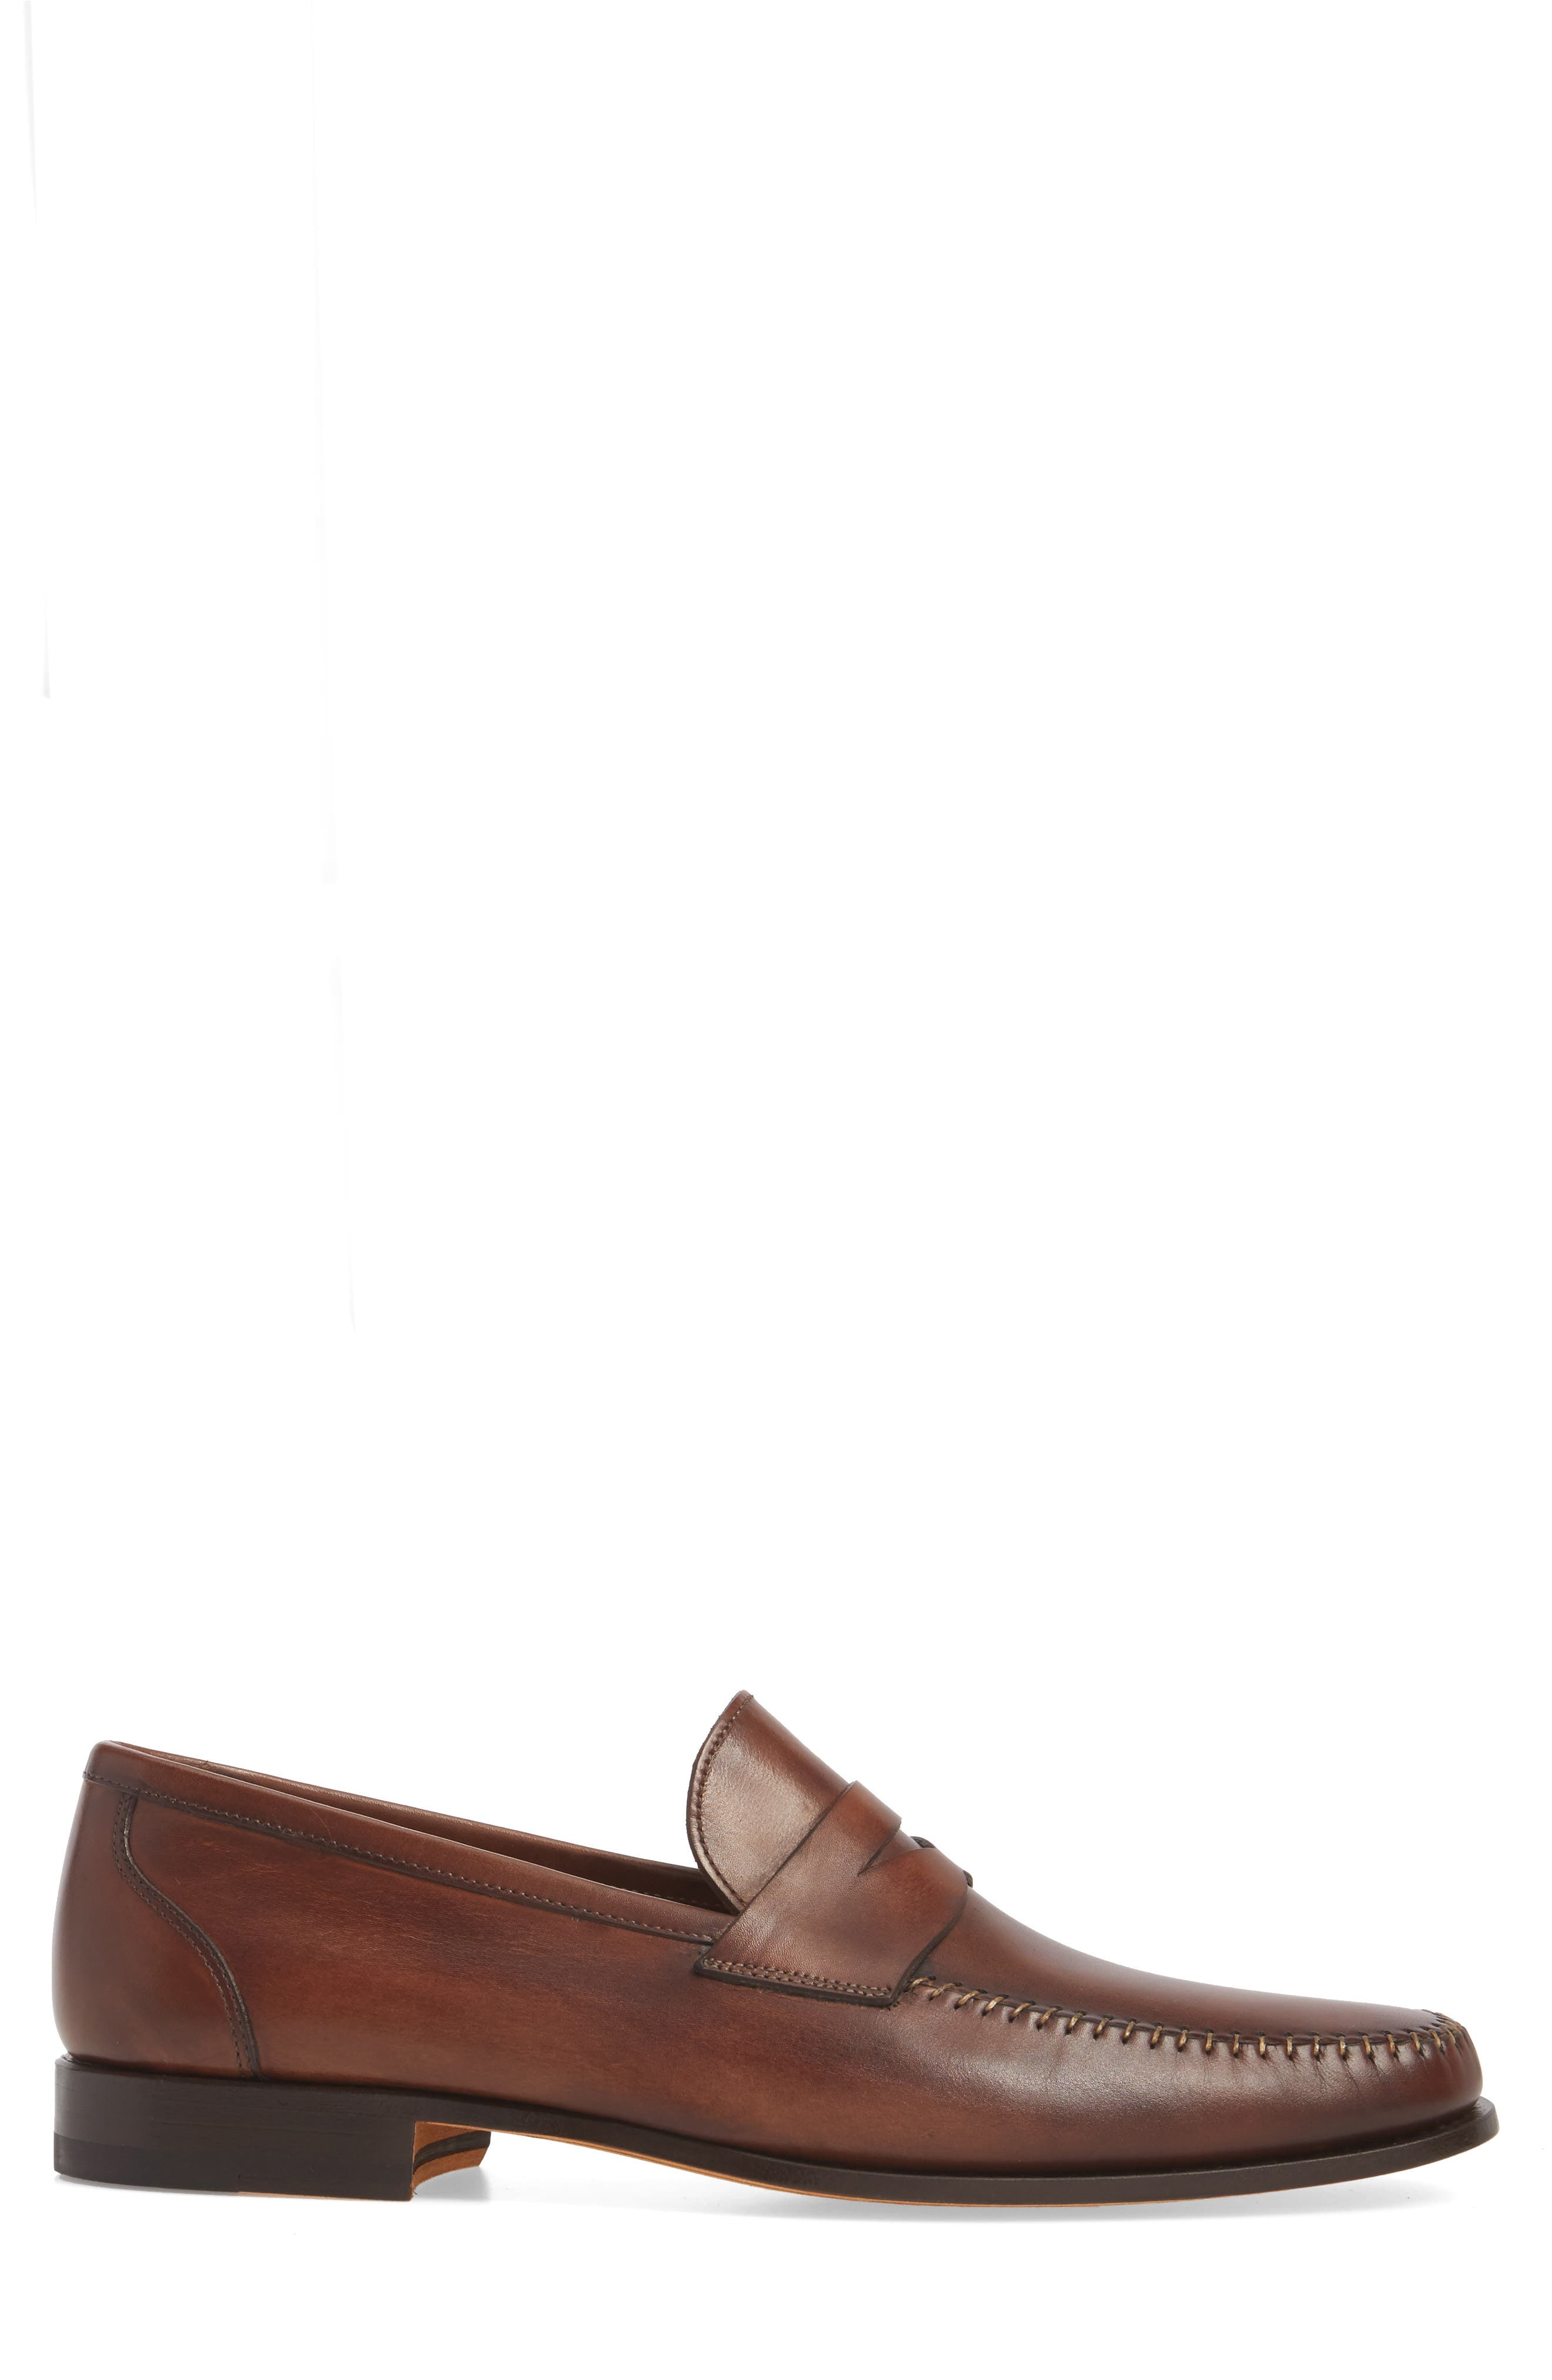 Ramos Moc Toe Penny Loafer,                             Alternate thumbnail 3, color,                             Brown Leather